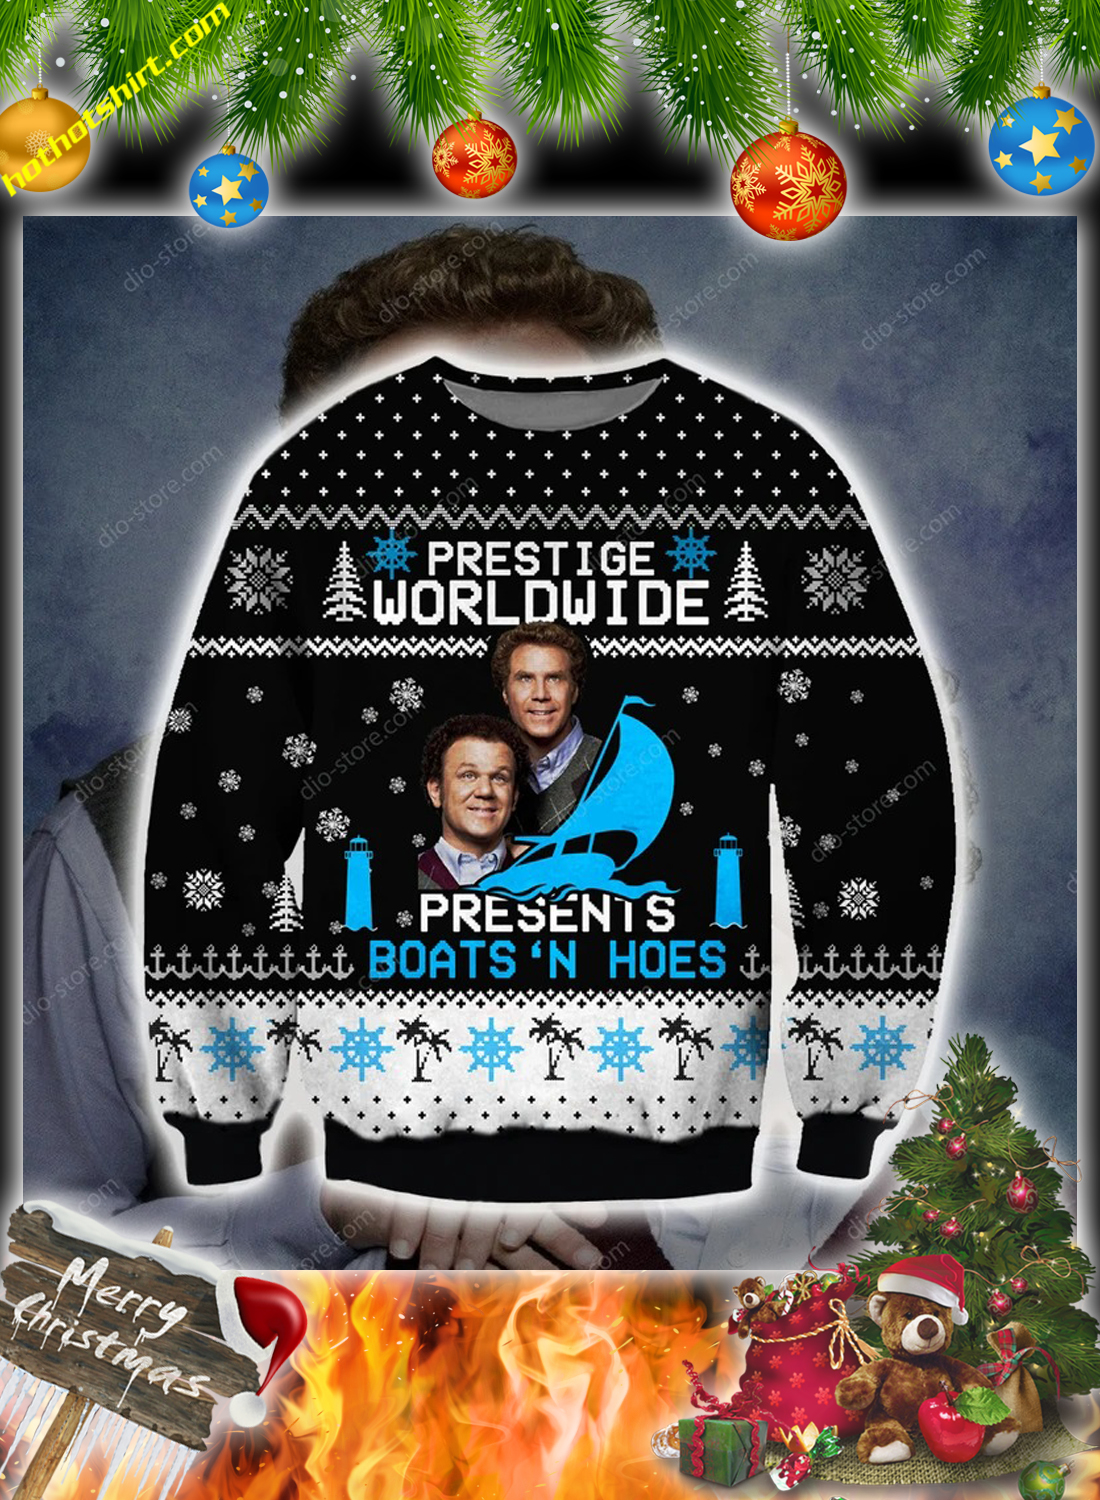 Step Brothers Prestige worldwide presents boats n hoes Ugly Christmas Sweater 2